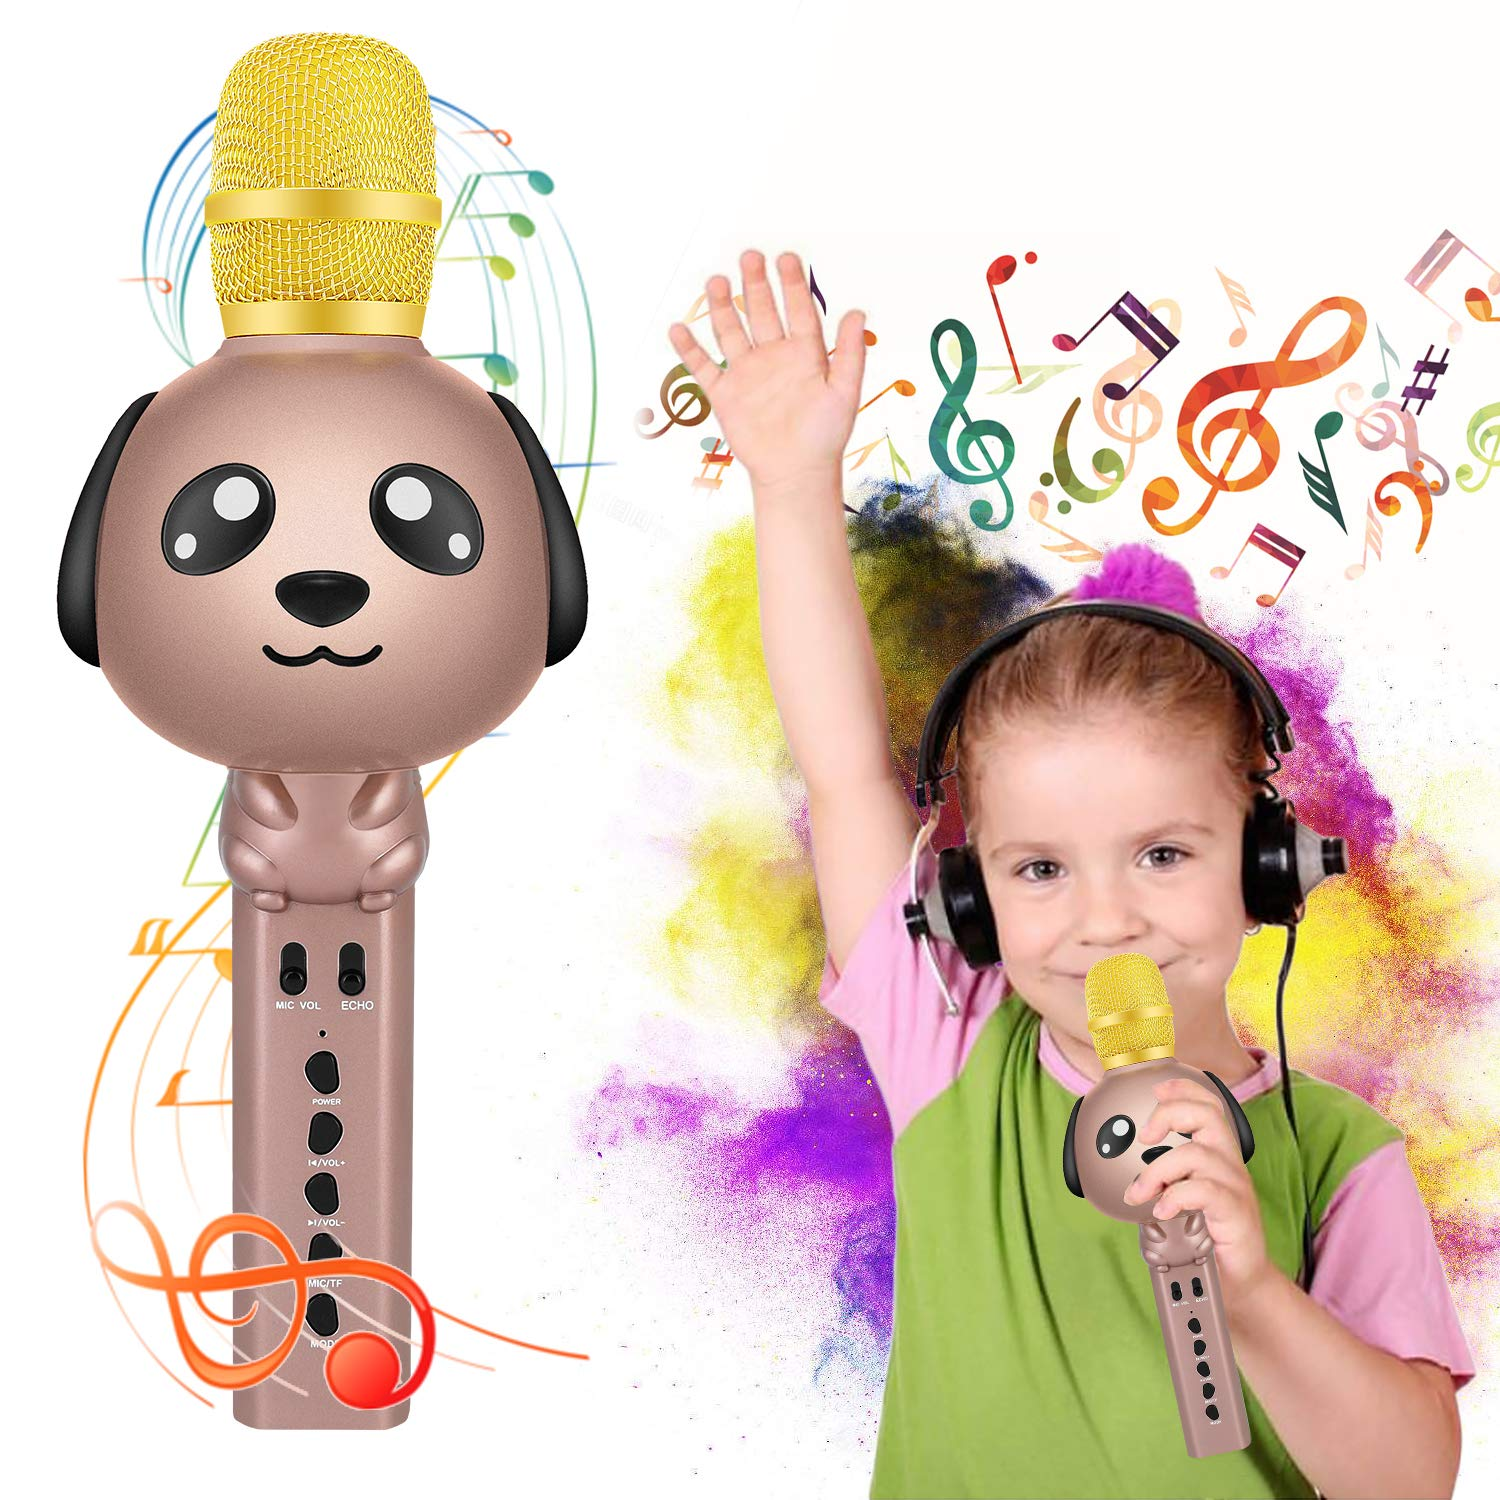 Seelinn Microphone for Kids Karaoke Microphone Bluetooth Wireless Microphone Portable Handheld Karaoke Machine Toys Gifts Singing Recording Home KTV Party iPhone Android PC Smartphone (Rose Glod)